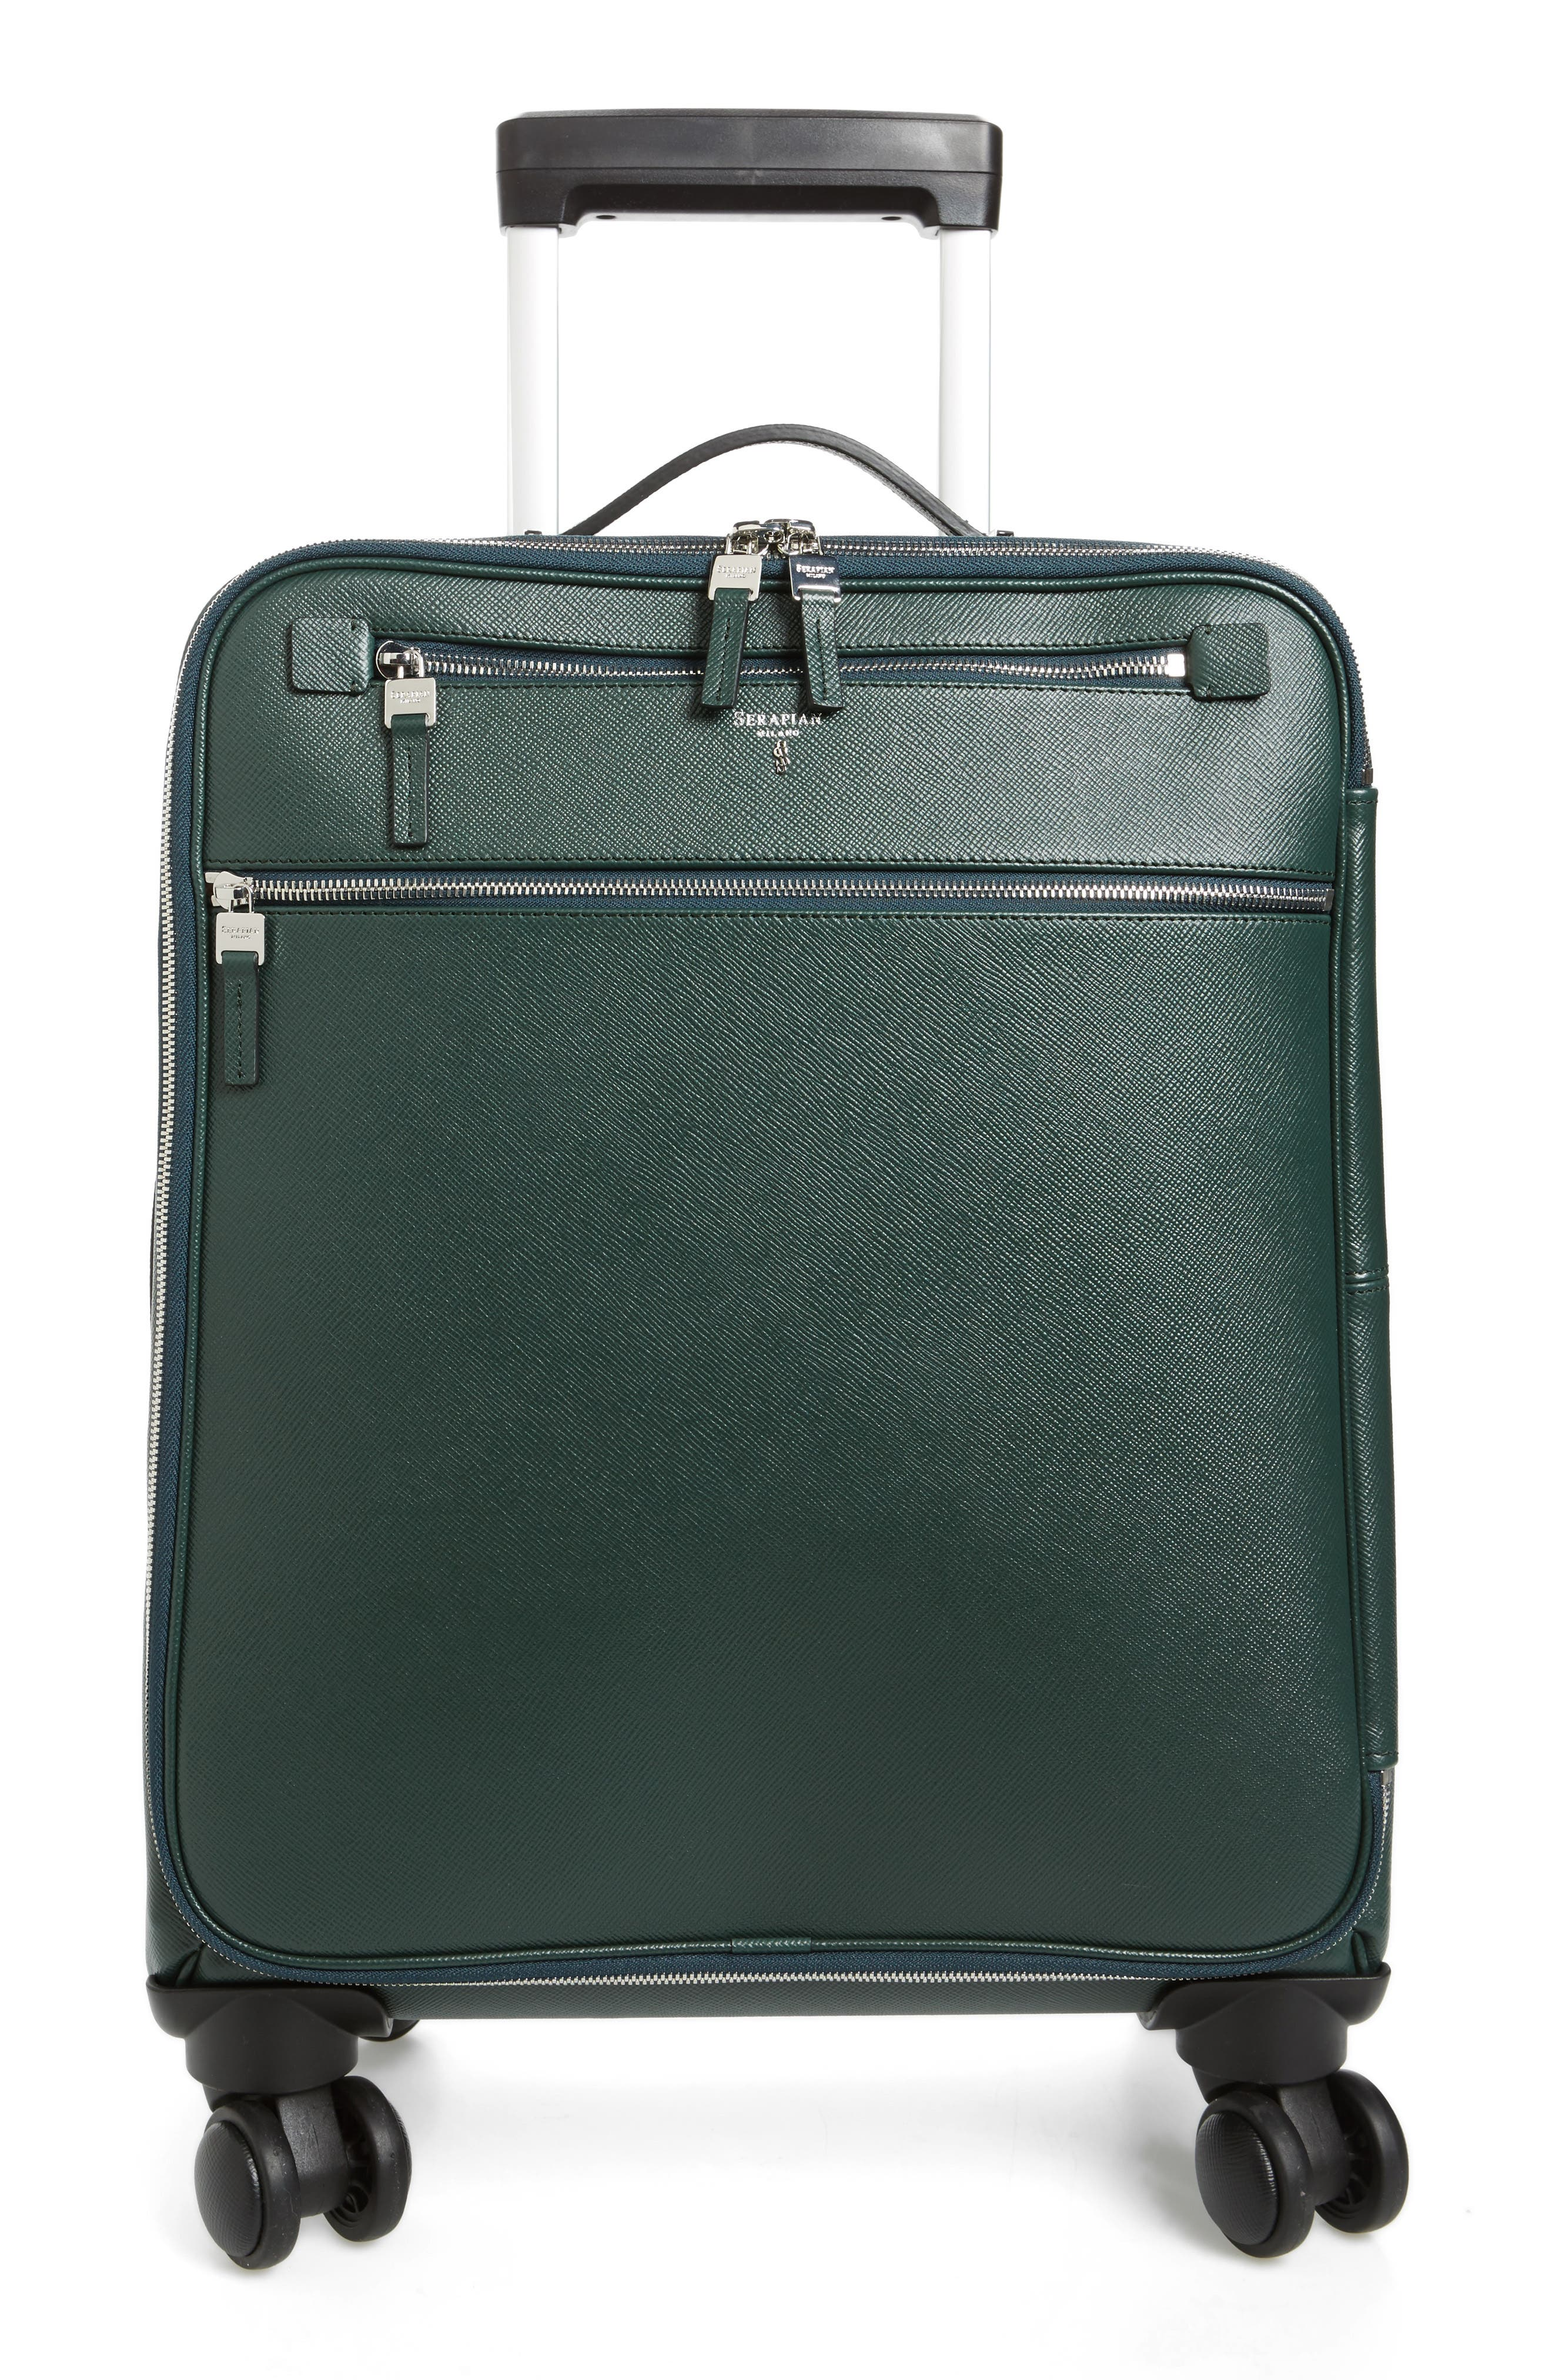 Trolley Spinner Wheeled Carry-On Suitcase,                             Main thumbnail 2, color,